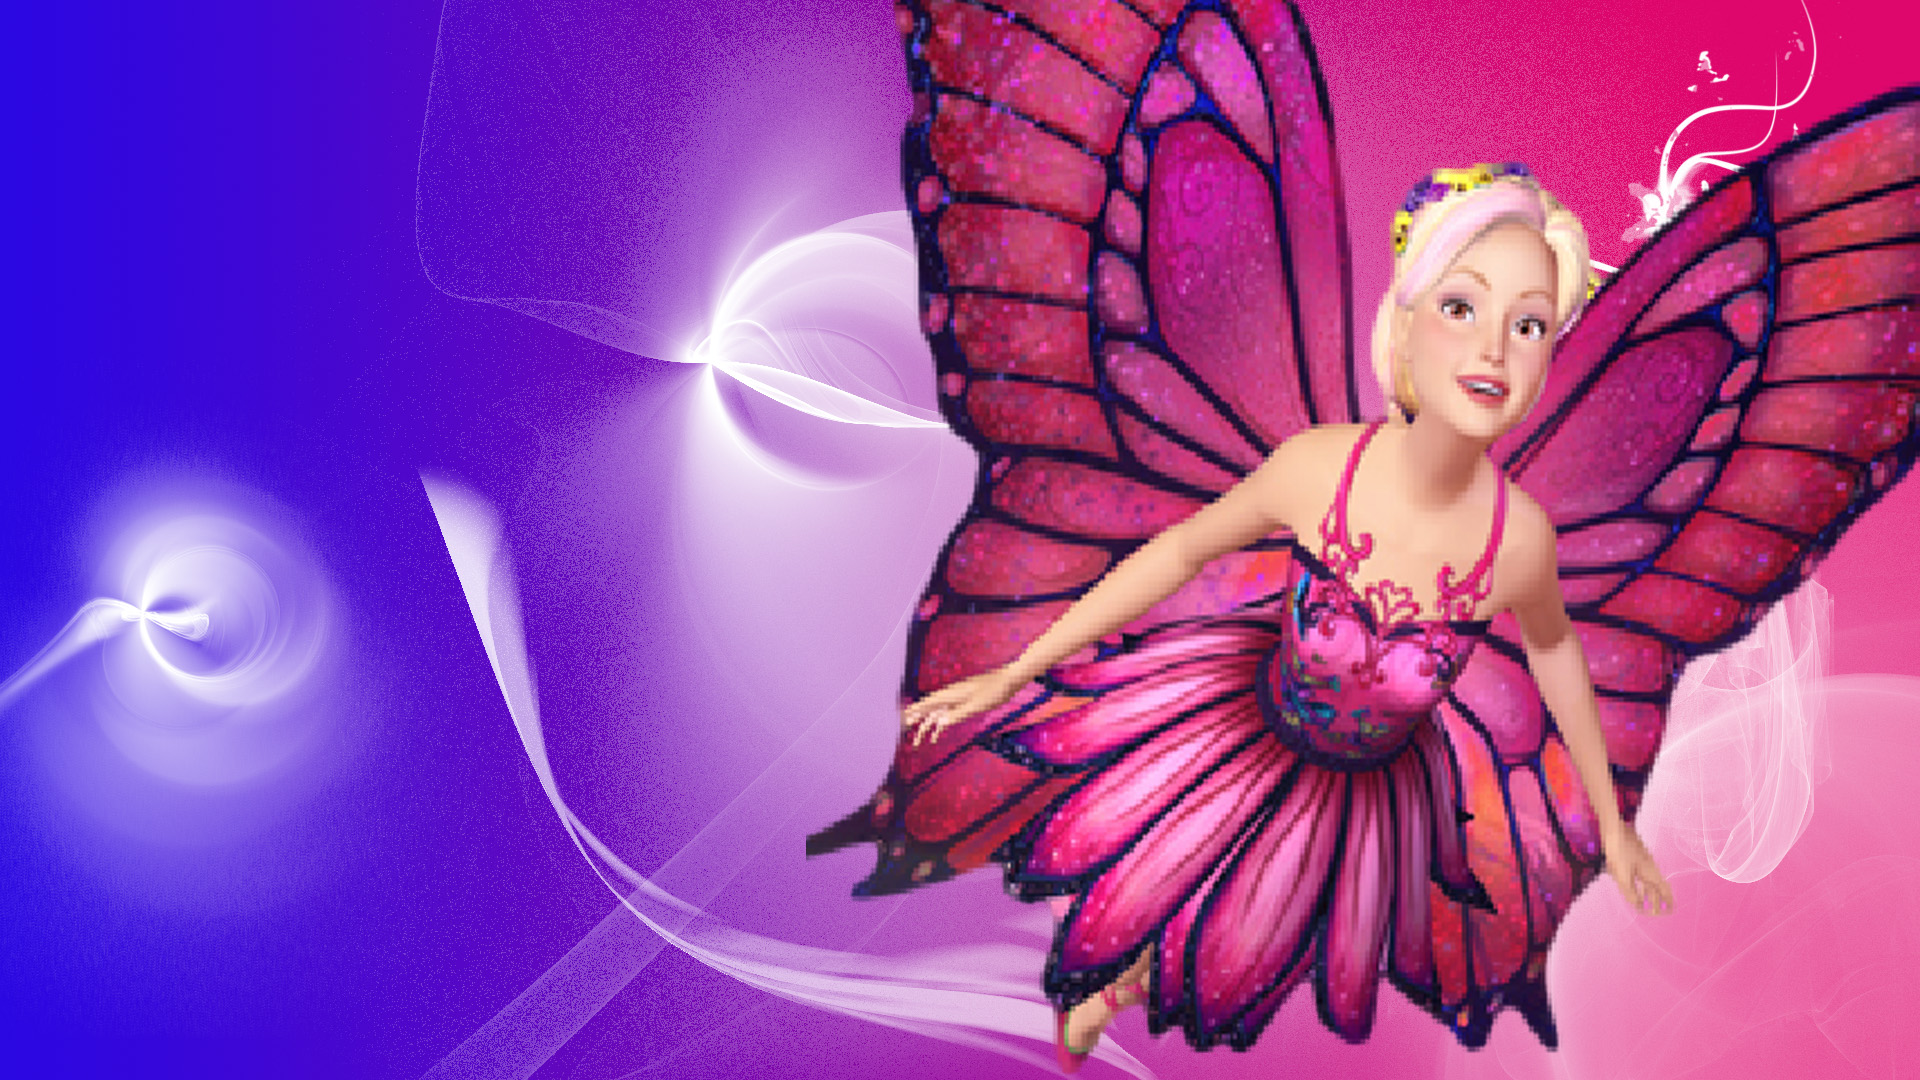 Popular Wallpaper Butterfly Barbie - Barbie-Mariposa-And-The-Fairy-Princess-newly-released-barbie-movies-38283657-1920-1080  Snapshot_152780.jpg